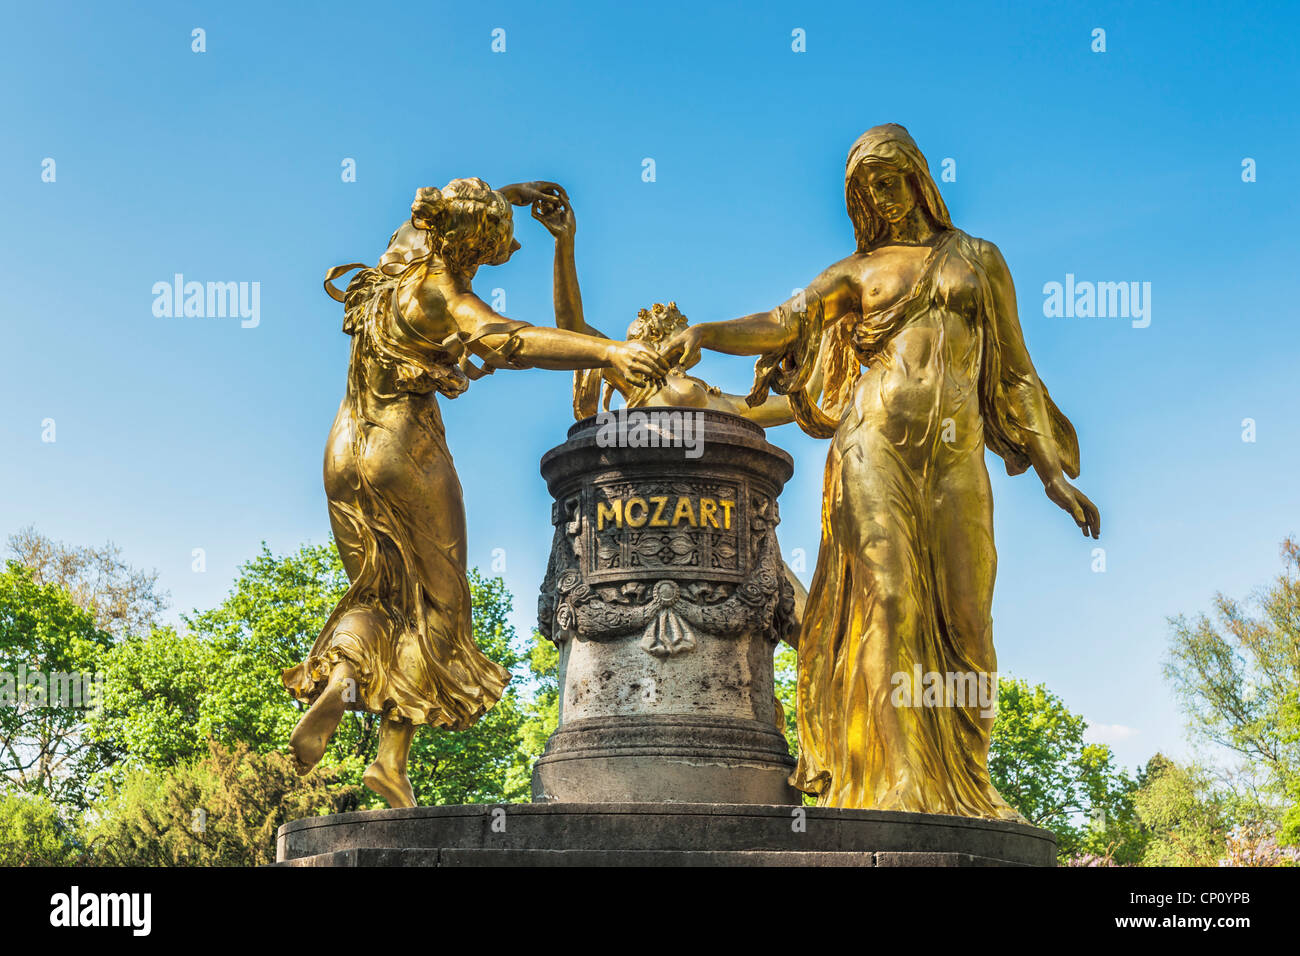 The Mozart fountain is located in the Blueherpark Dresden, Saxony, Germany, Europe - Stock Image